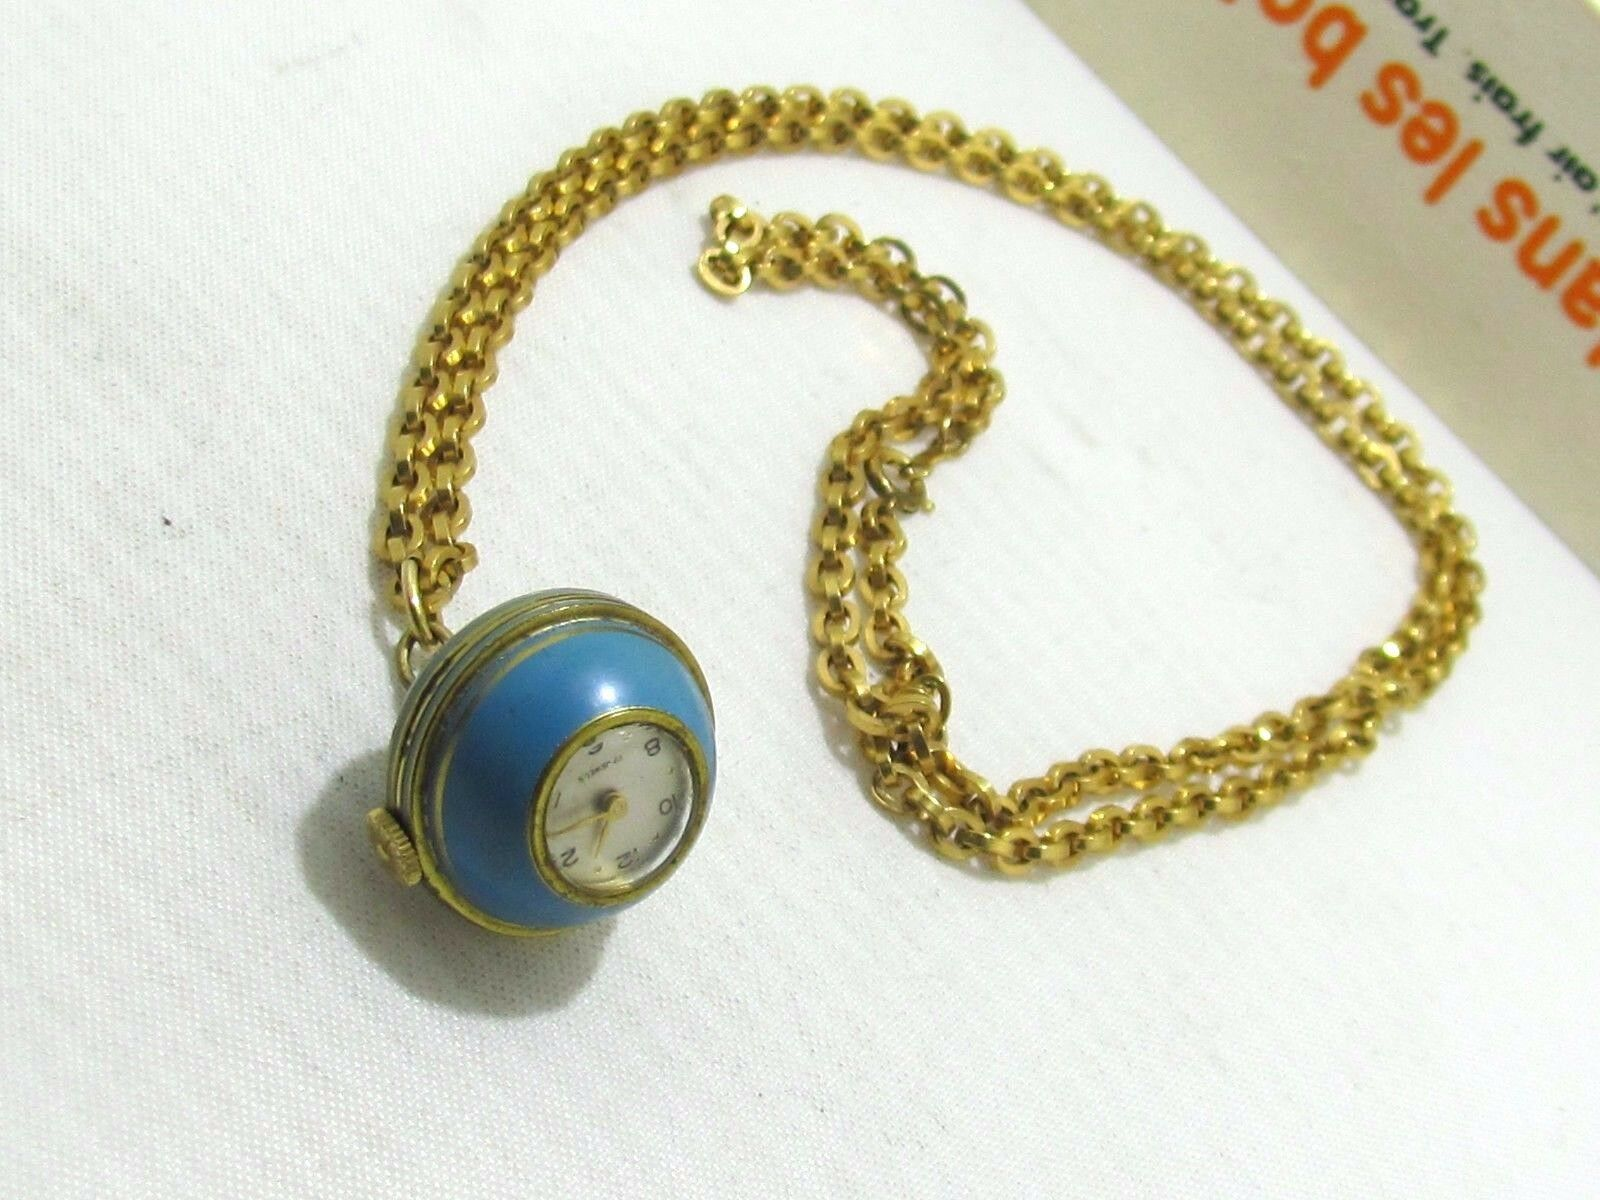 ATLANTA VINTAGE EARLY CENTURY PENDANT WATCH SWISS MADE ENAMEL & METAL GOLD TONE